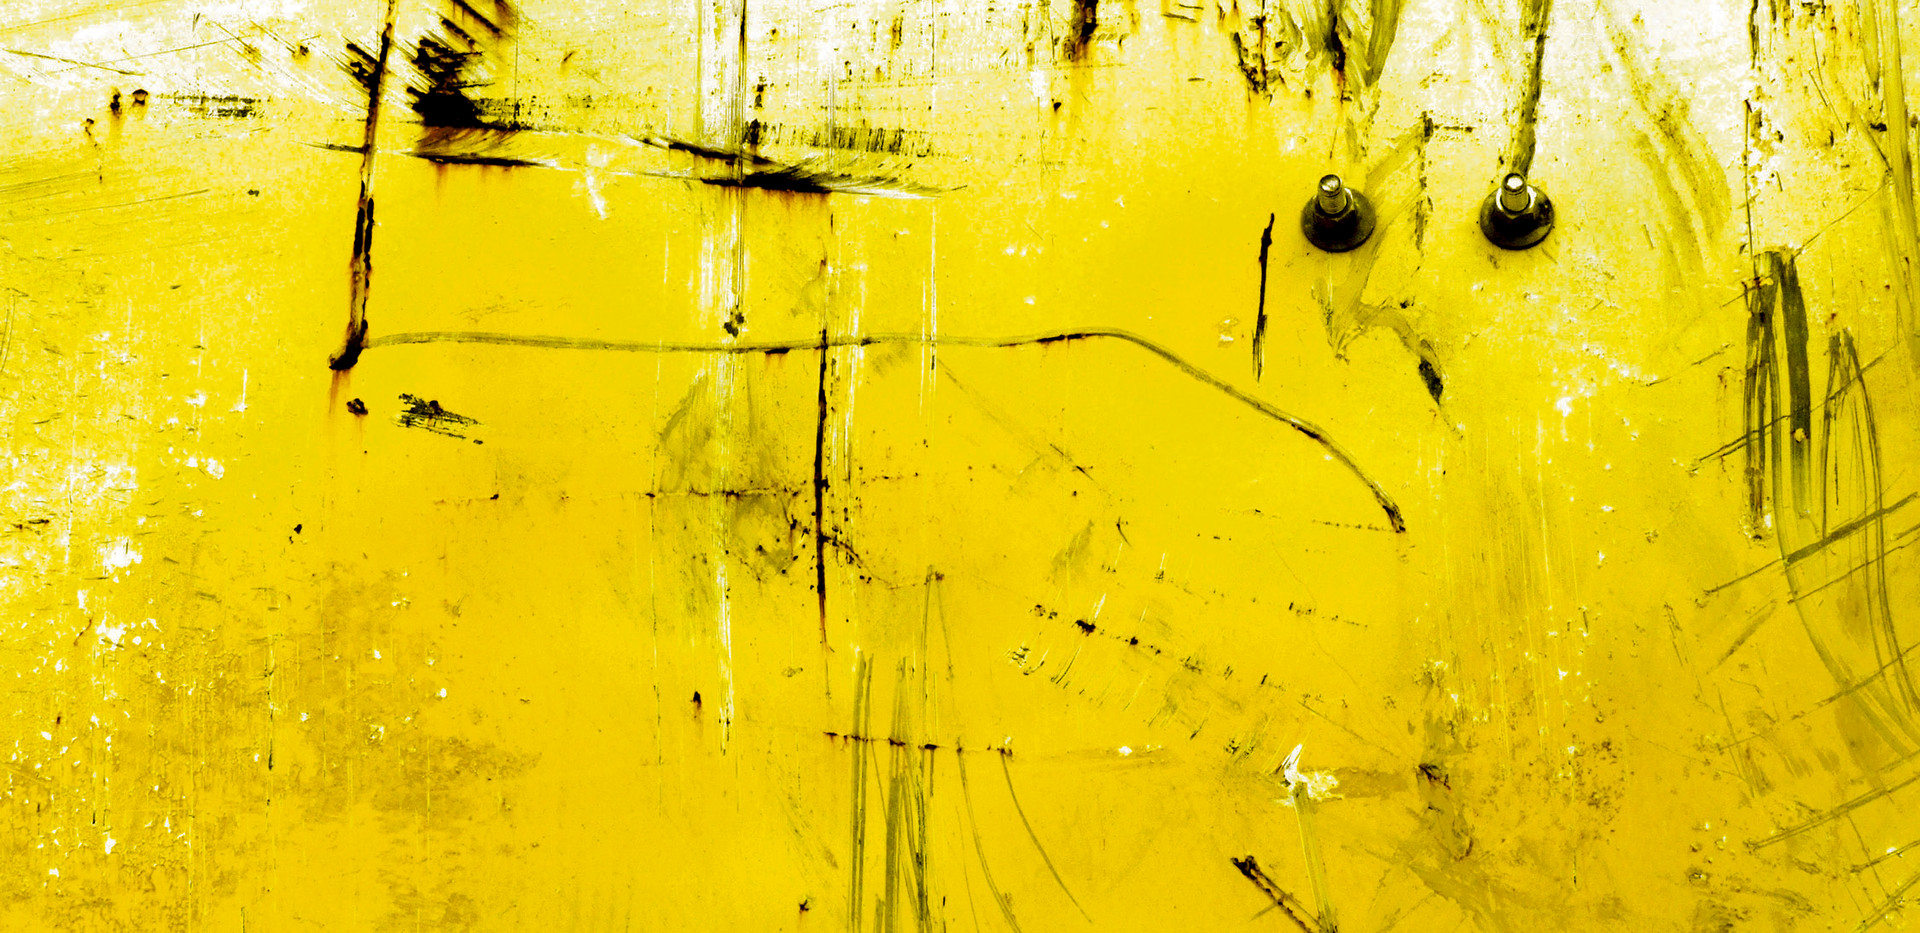 Movement 2 in Yellow